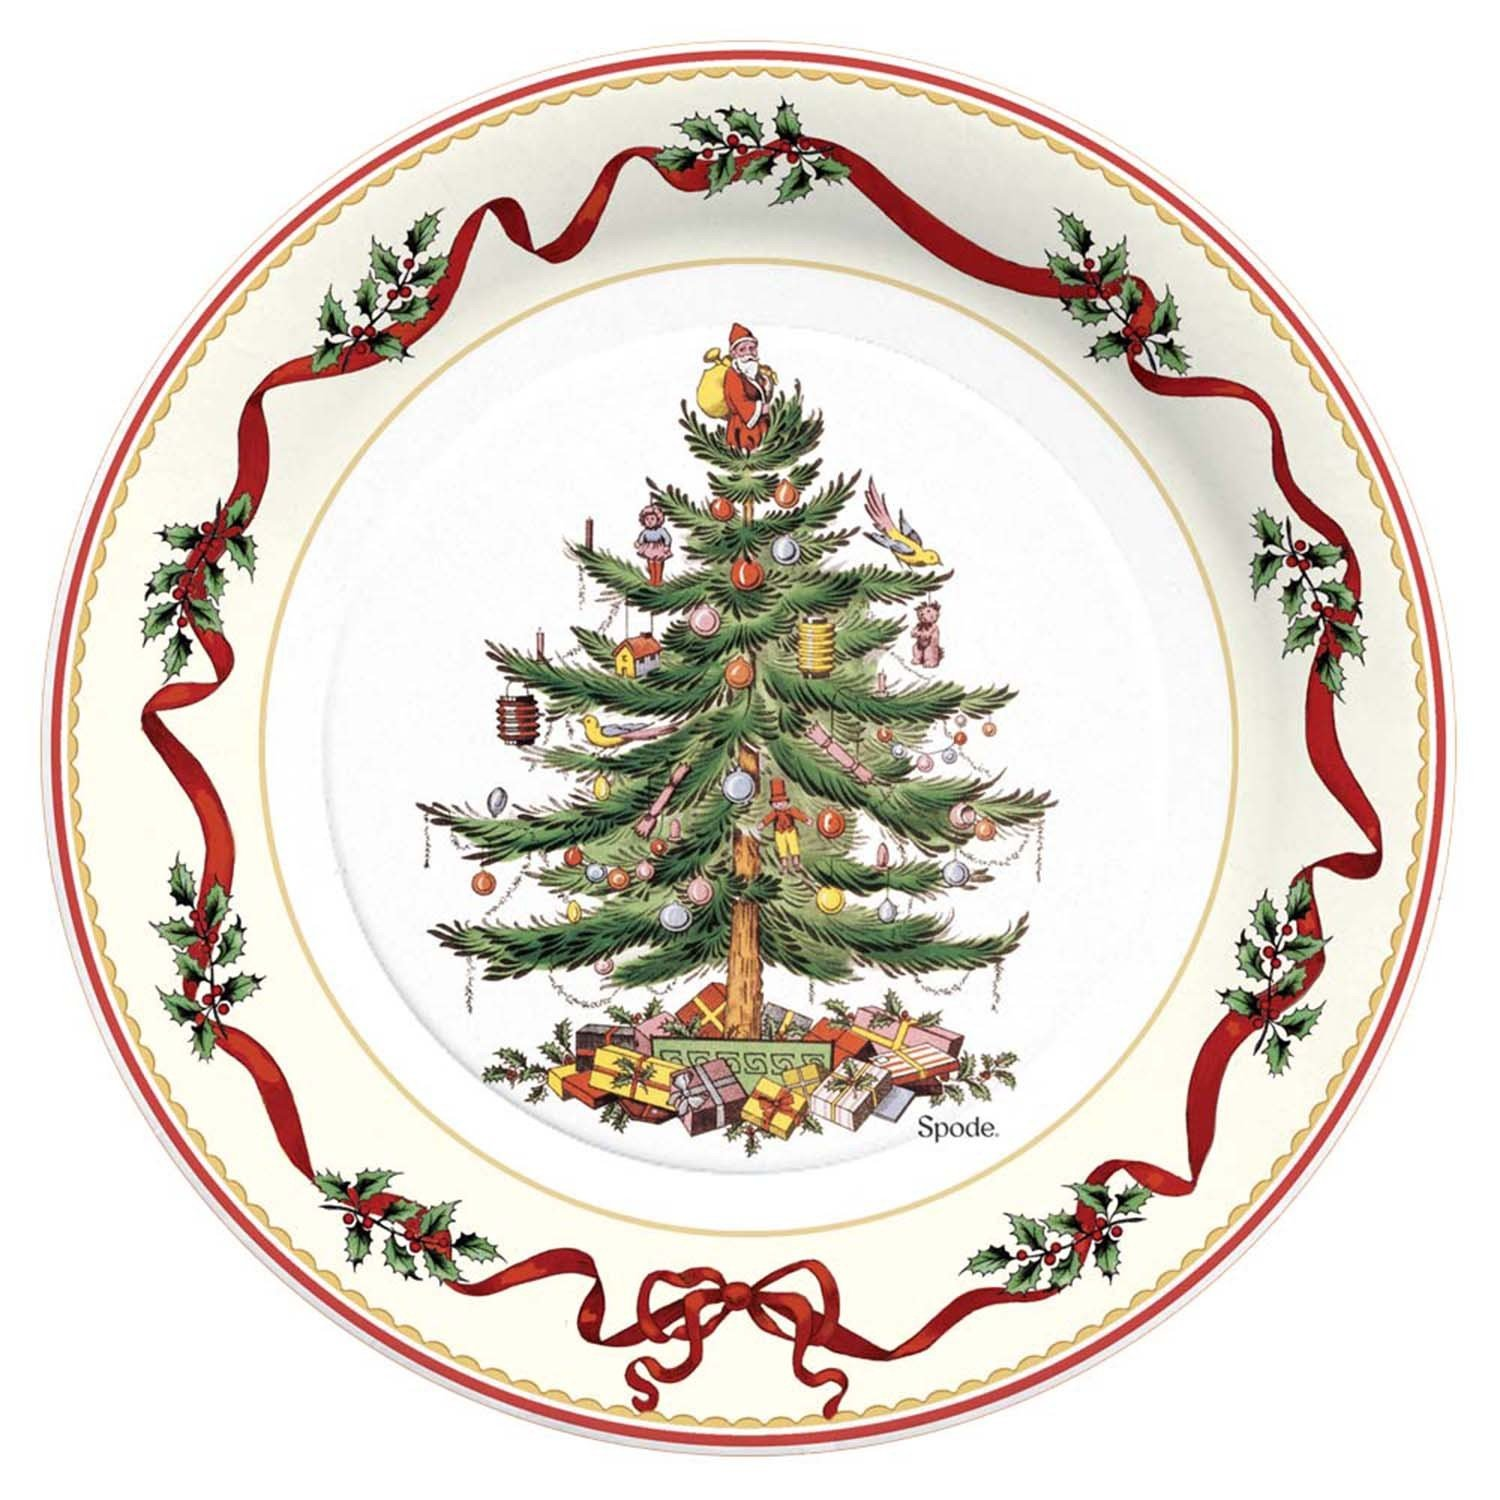 Amazon.com C.R. Gibson 8 Count Decorative Paper Dinner Plates Easy Clean Up Measures 10.5  - Christmas Holly u0026 Ribbon Kitchen u0026 Dining  sc 1 st  Amazon.com & Amazon.com: C.R. Gibson 8 Count Decorative Paper Dinner Plates Easy ...